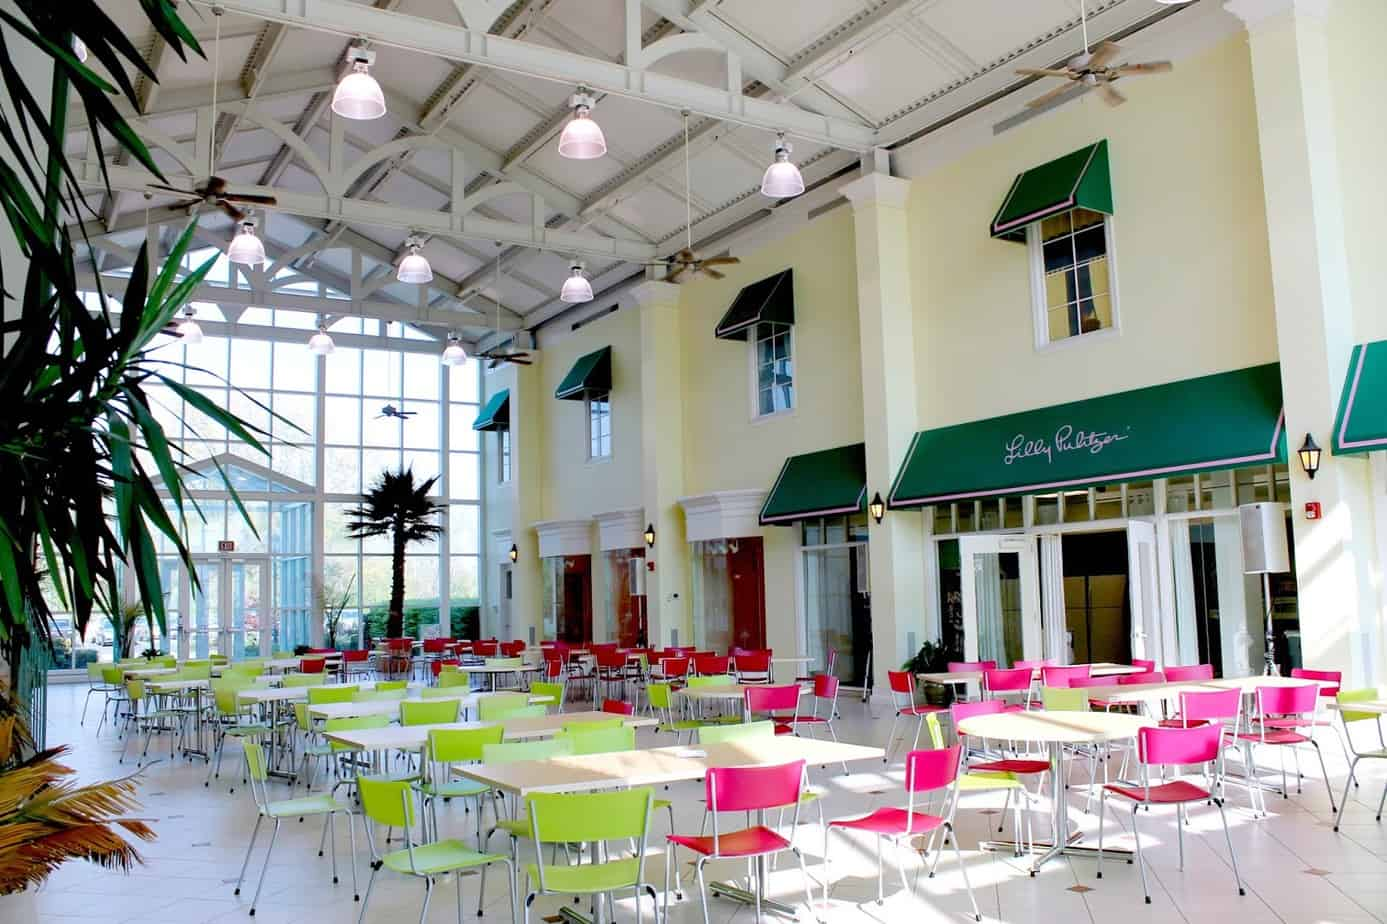 A Glass Atrium Complete With Pink And Green Chairs, Awnings, Ceiling Fans  {that Run Even Through The Cold Winter Months To Keep Everyone In The  Florida ...